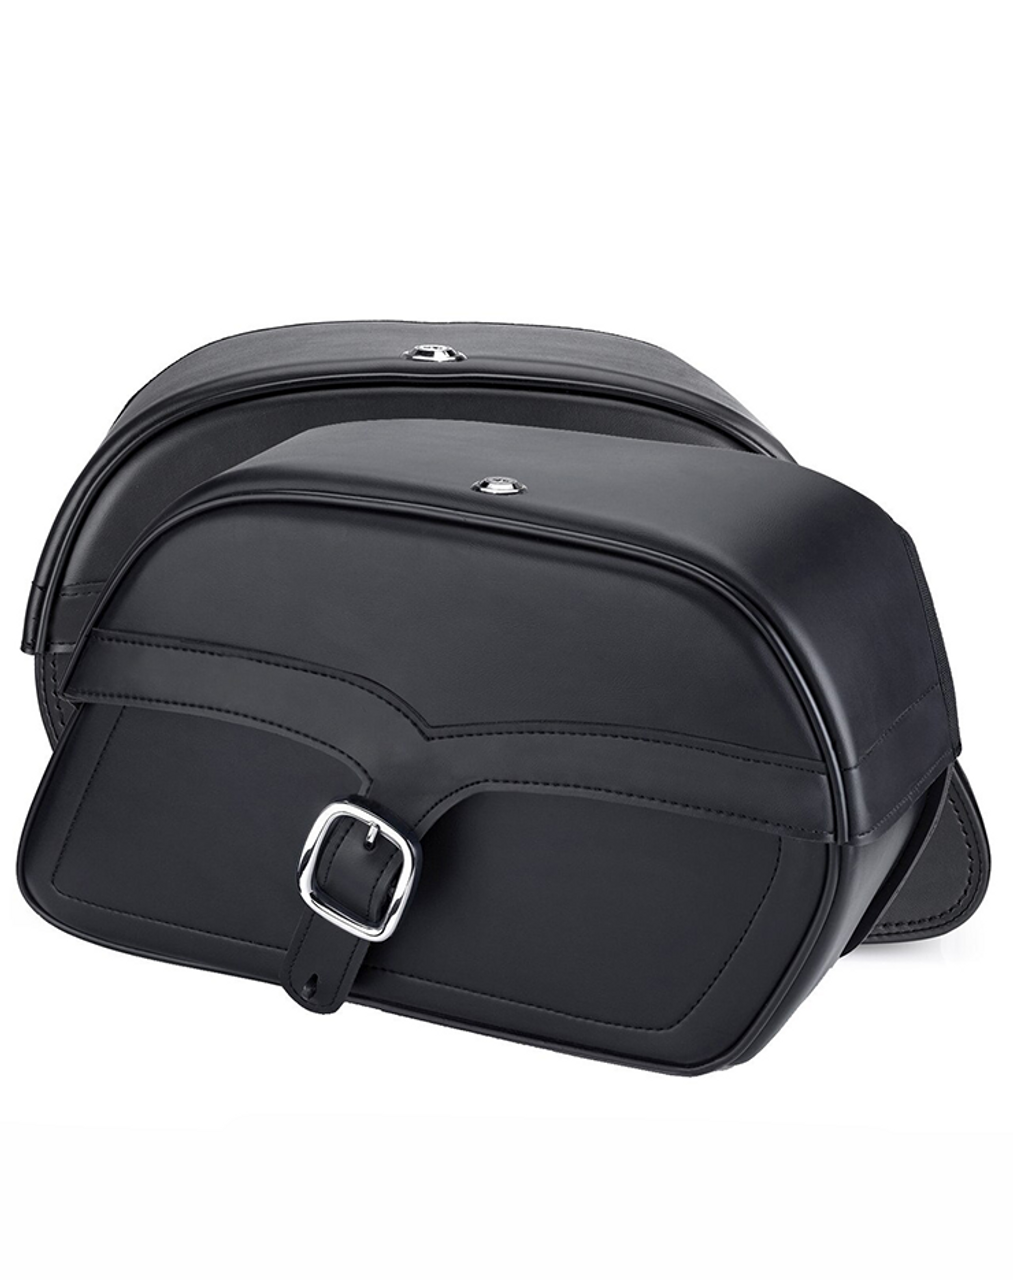 Viking Charger Single Strap Medium Motorcycle Saddlebags For Harley Softail Standard FXST Both bag view